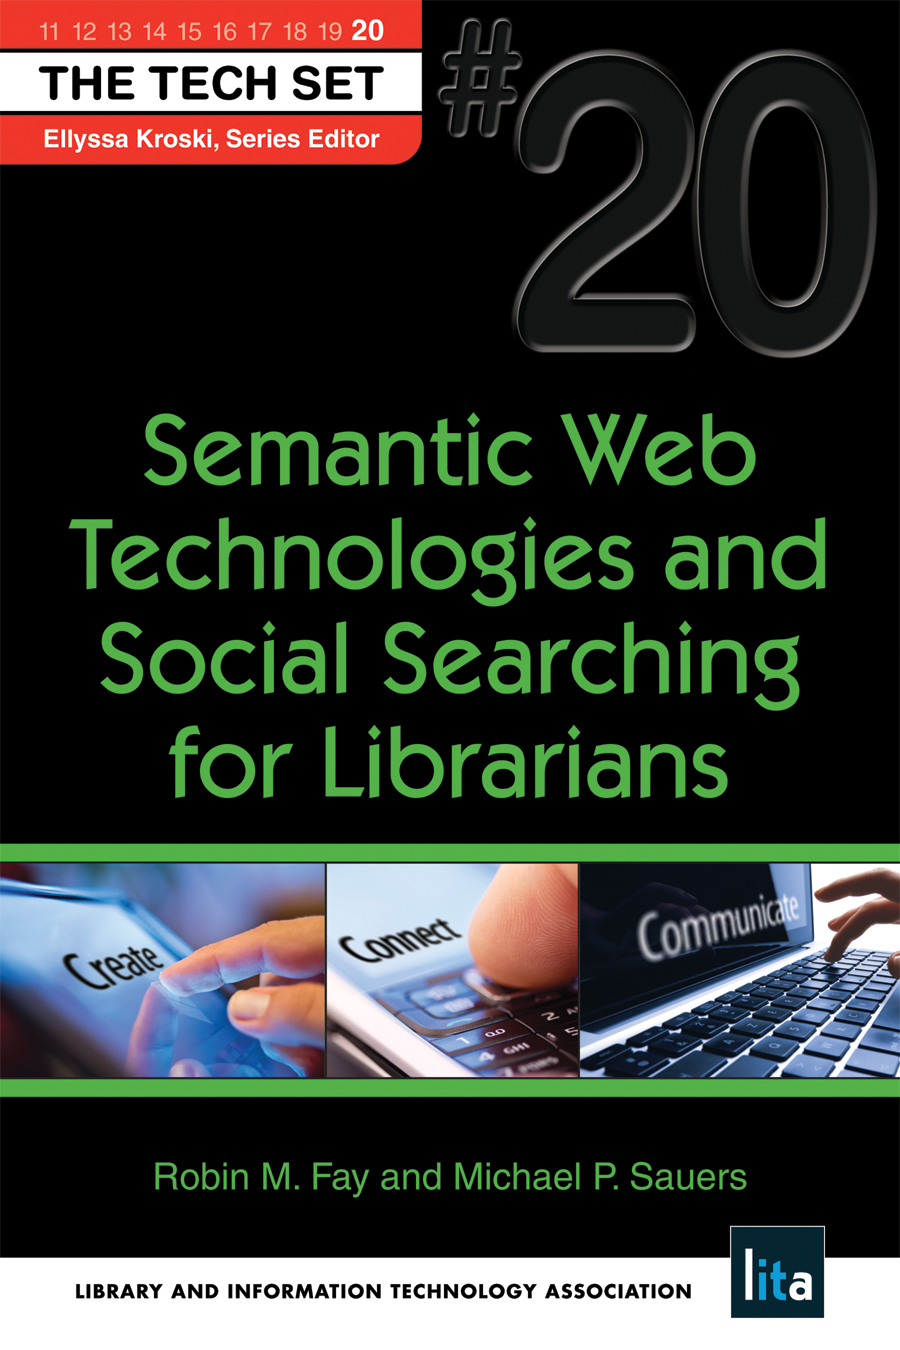 Semantic Web Technologies and Social Searching for Librarians: (THE TECH SET® #20) By: Michael P. Sauers,Robin M. Fay